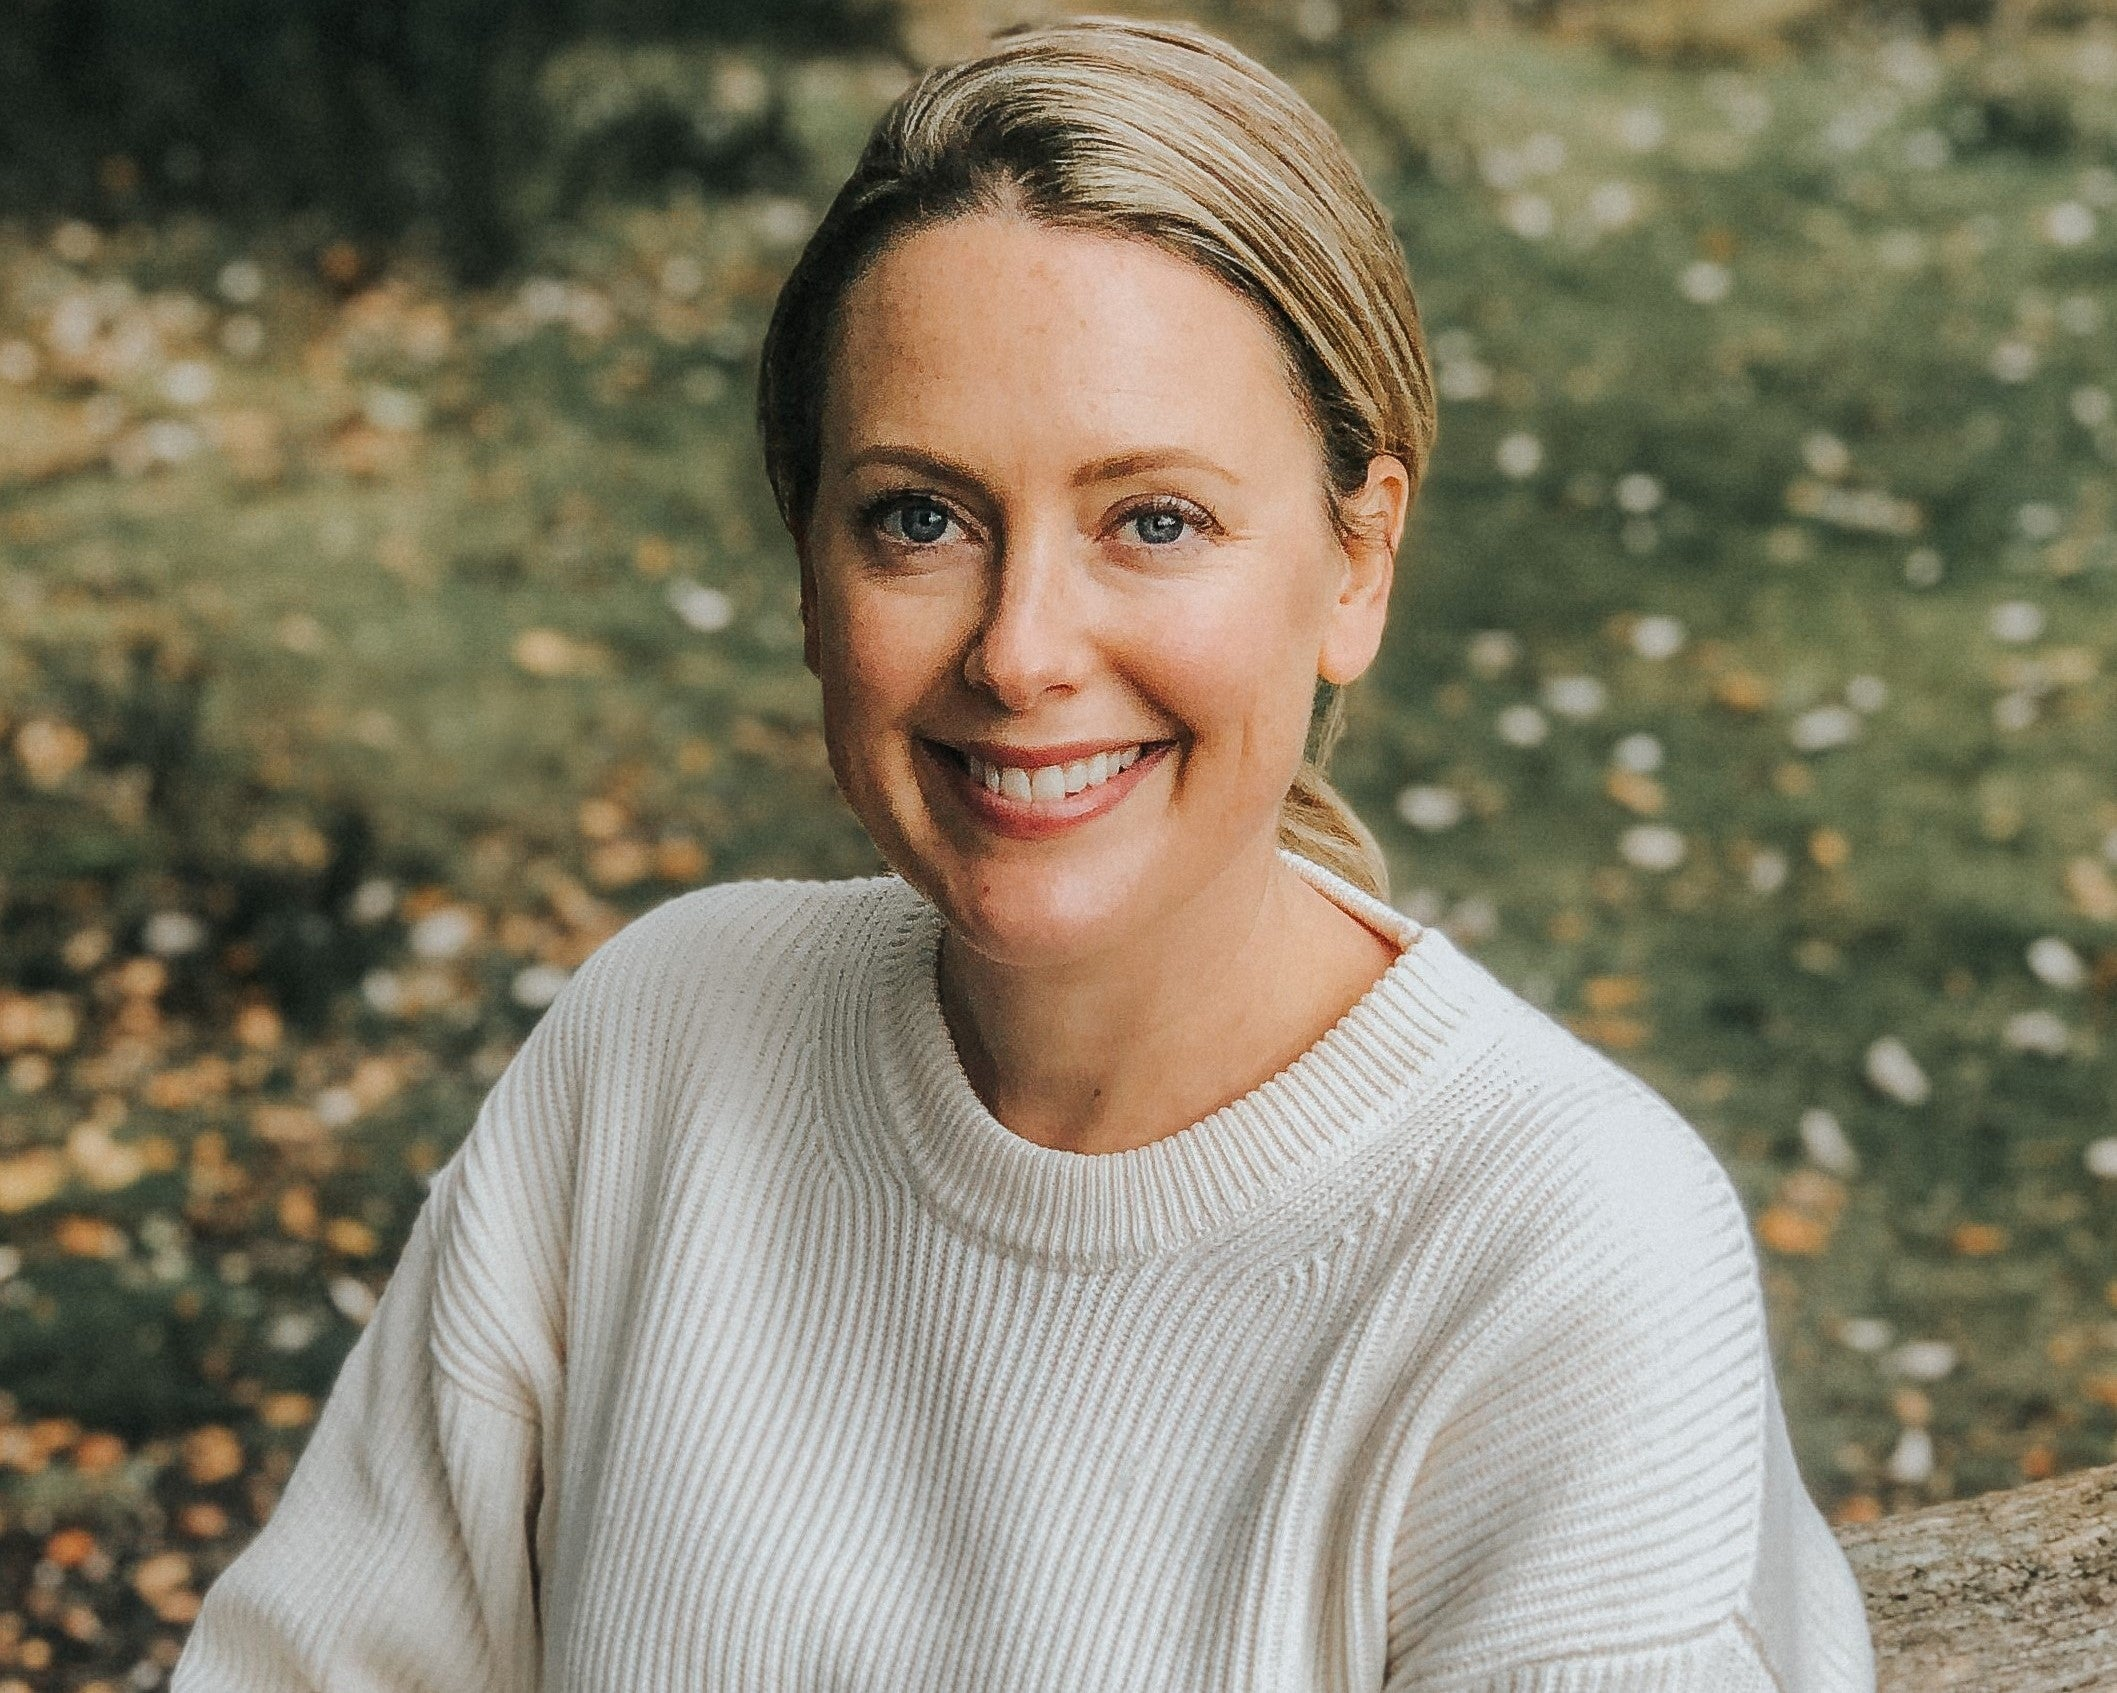 Kathryn co-founder of Wild & Stone